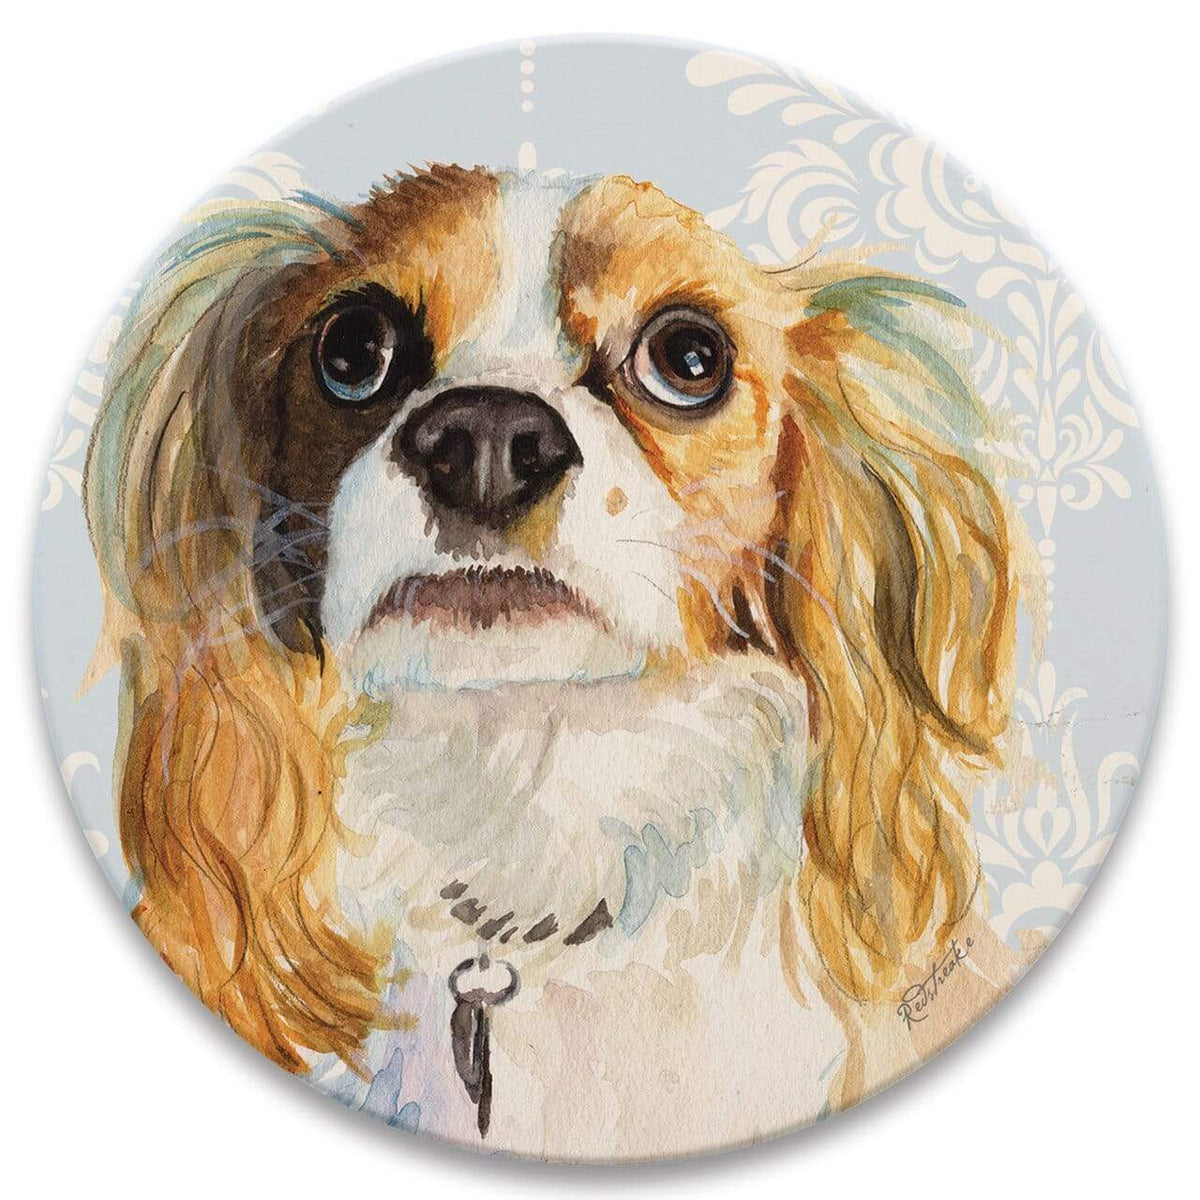 Karma Kiss FurKids Dogs King Charles Spaniel Coaster - Set of 4